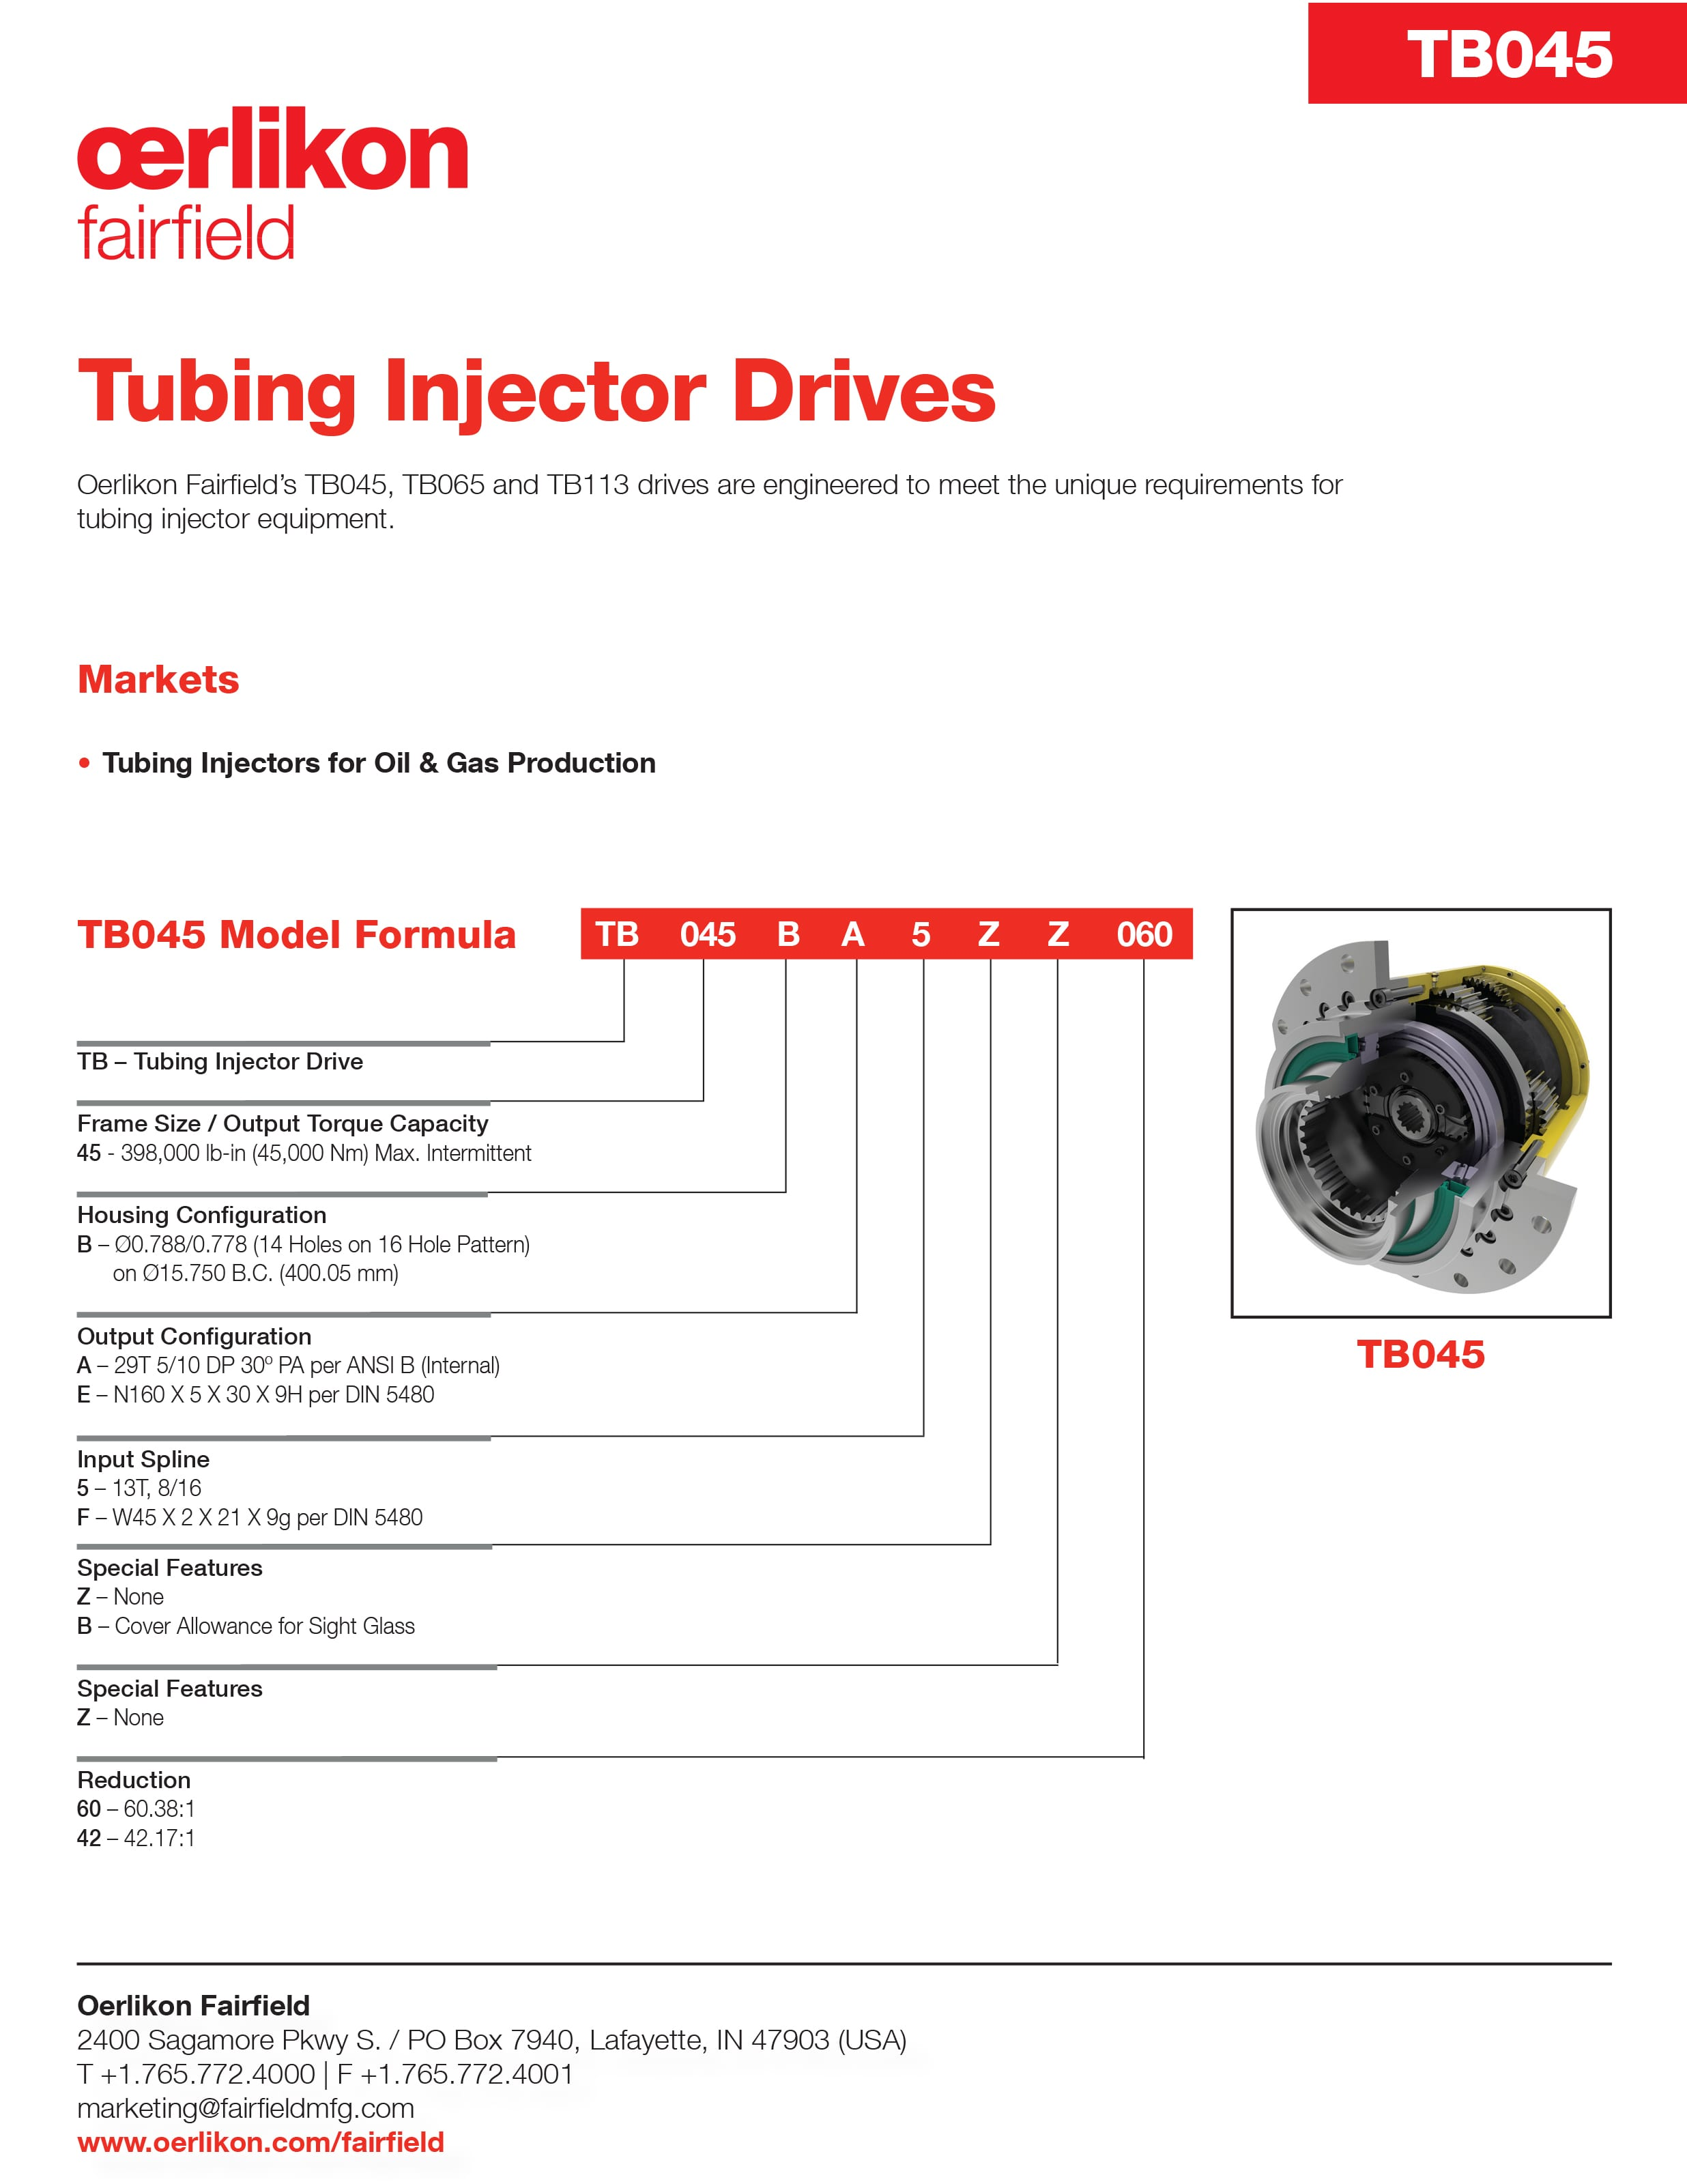 Tech Sheet - Tubing Injector Drives